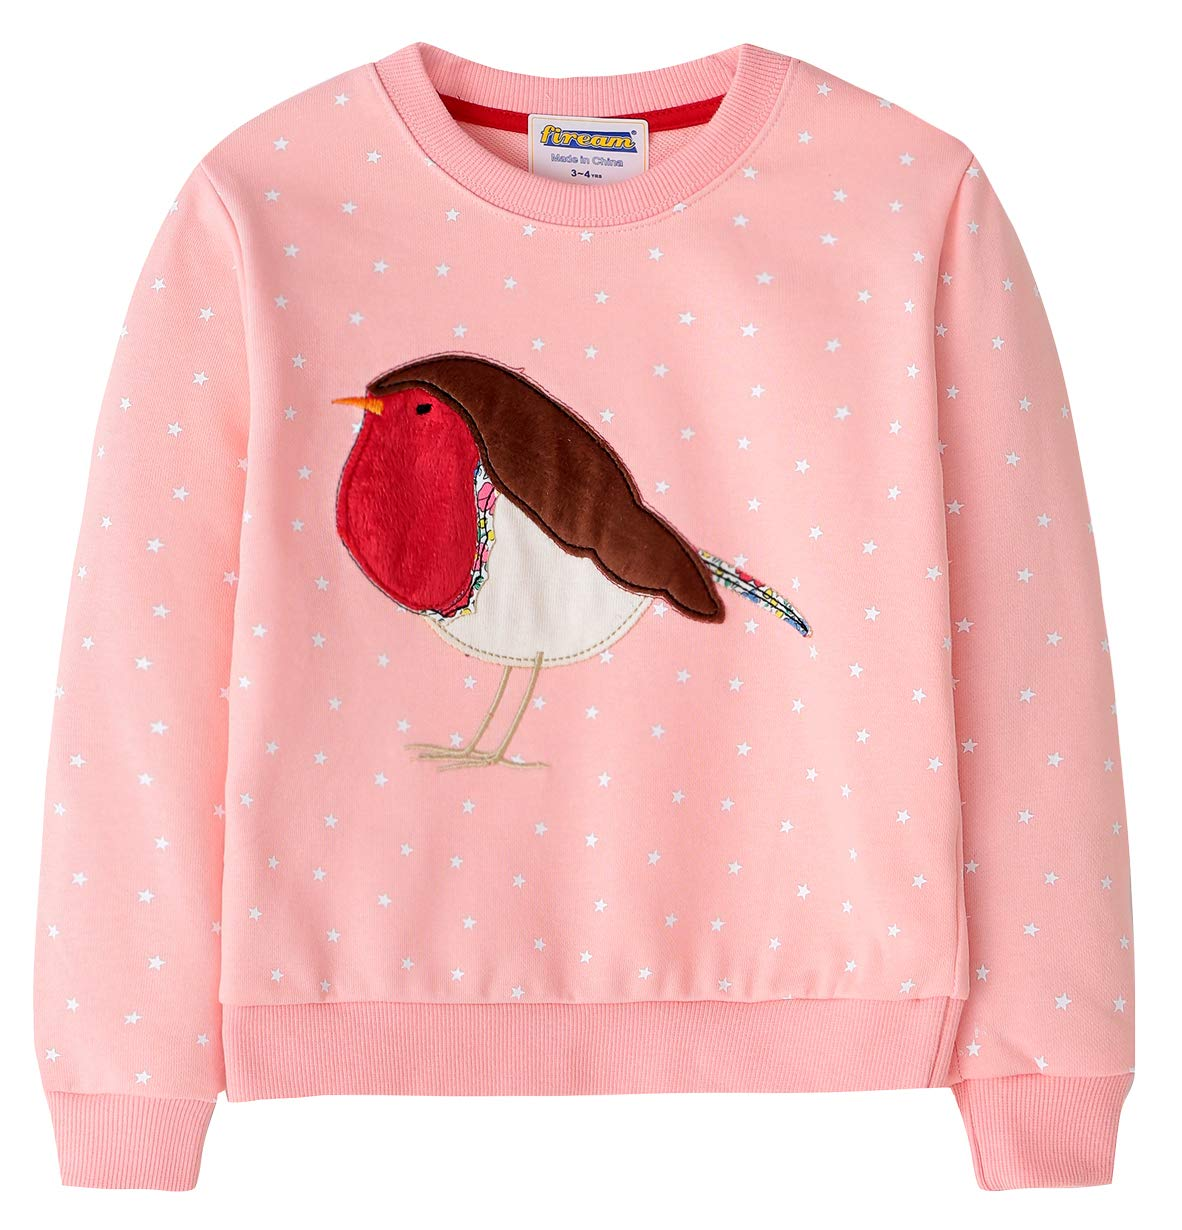 Fiream Girls Cotton Crewneck Cute Embroidery Sweatshirts(3055,7T/7-8YRS)